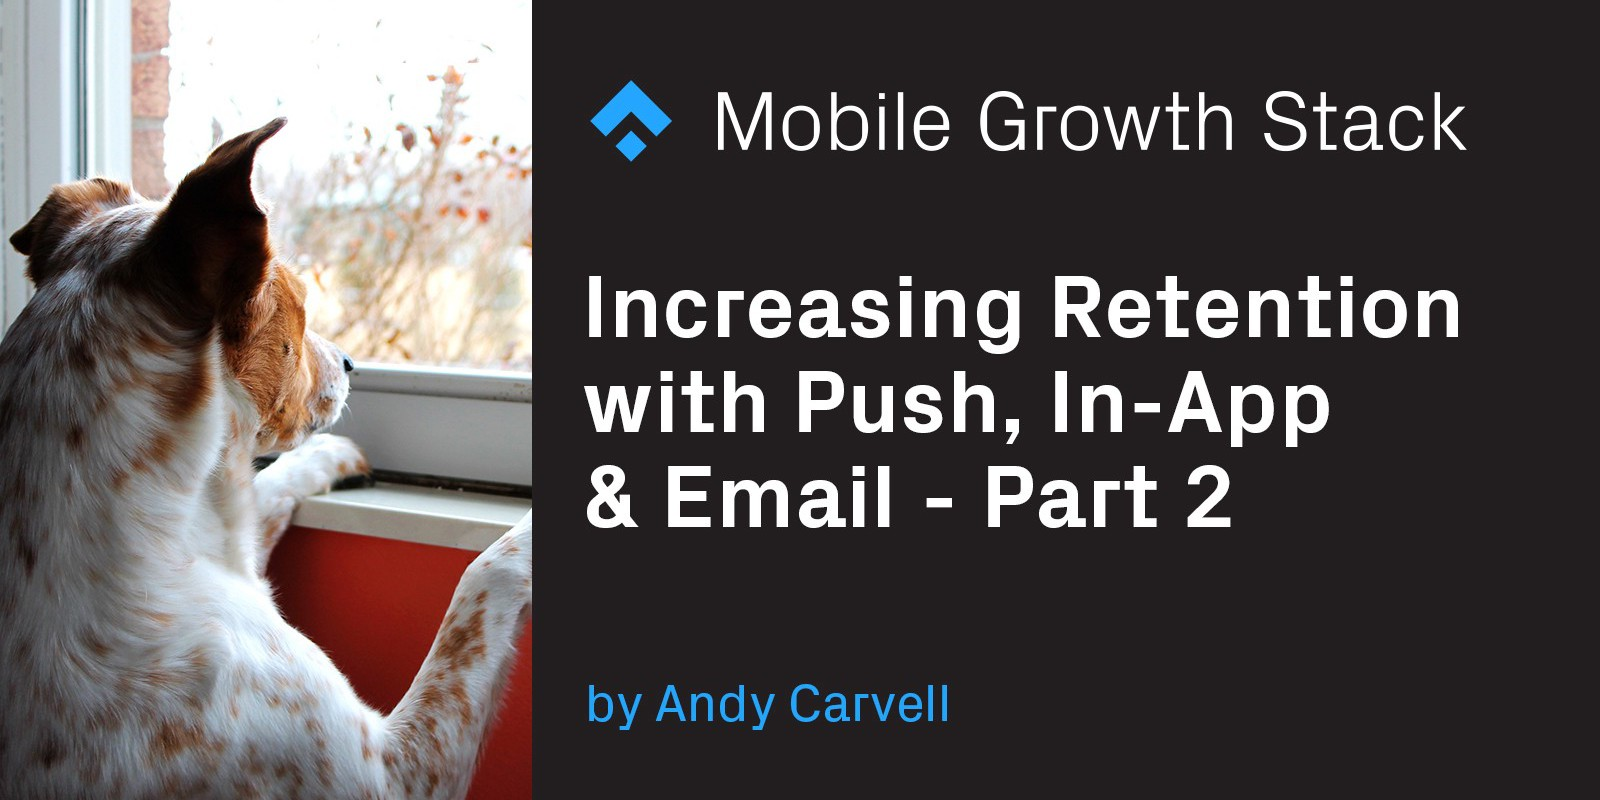 Increasing Retention with Push, In-App and Email Part 2: Developing a Mobile CRM Strategy for Retention